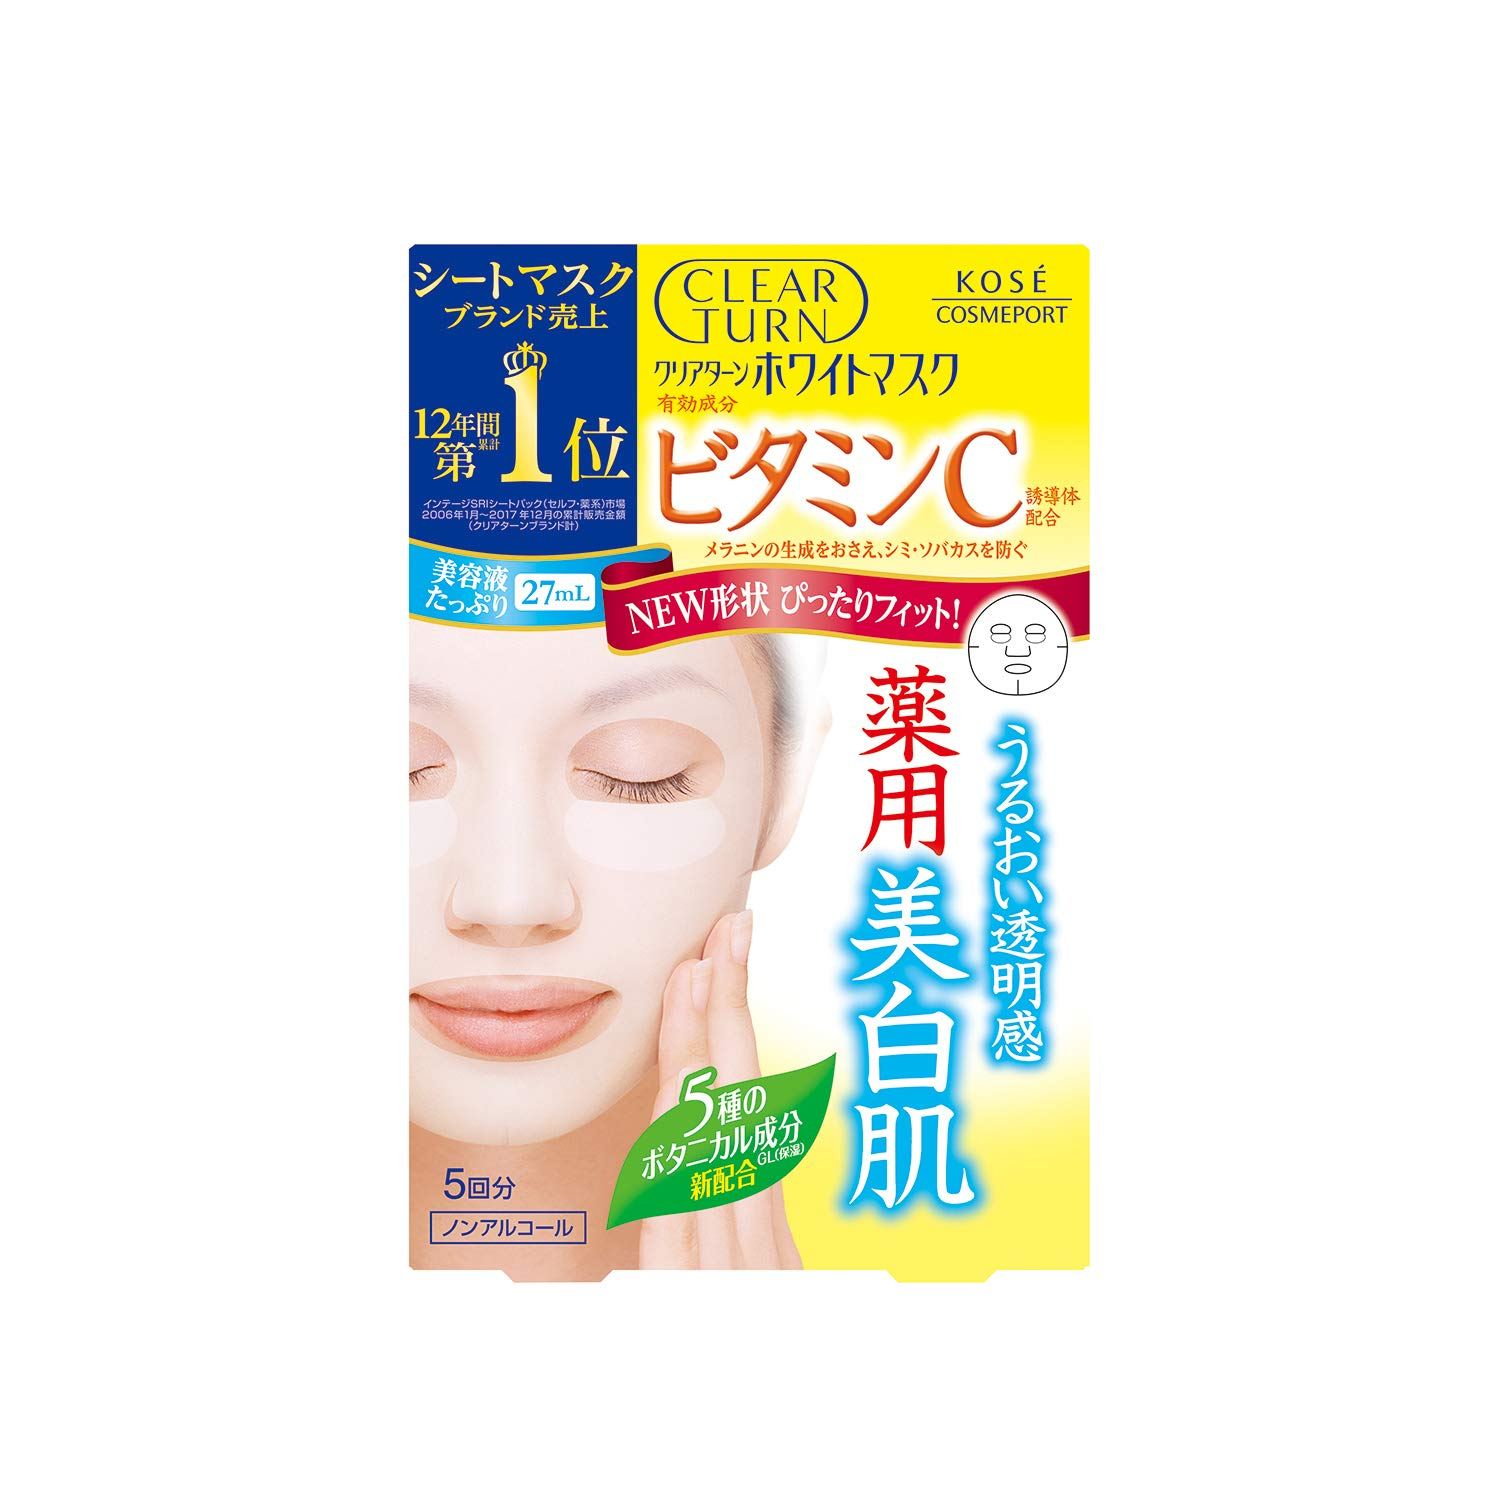 Kose Clear Turn White Vitamin C Facial Mask Sheets, 5 Count 1